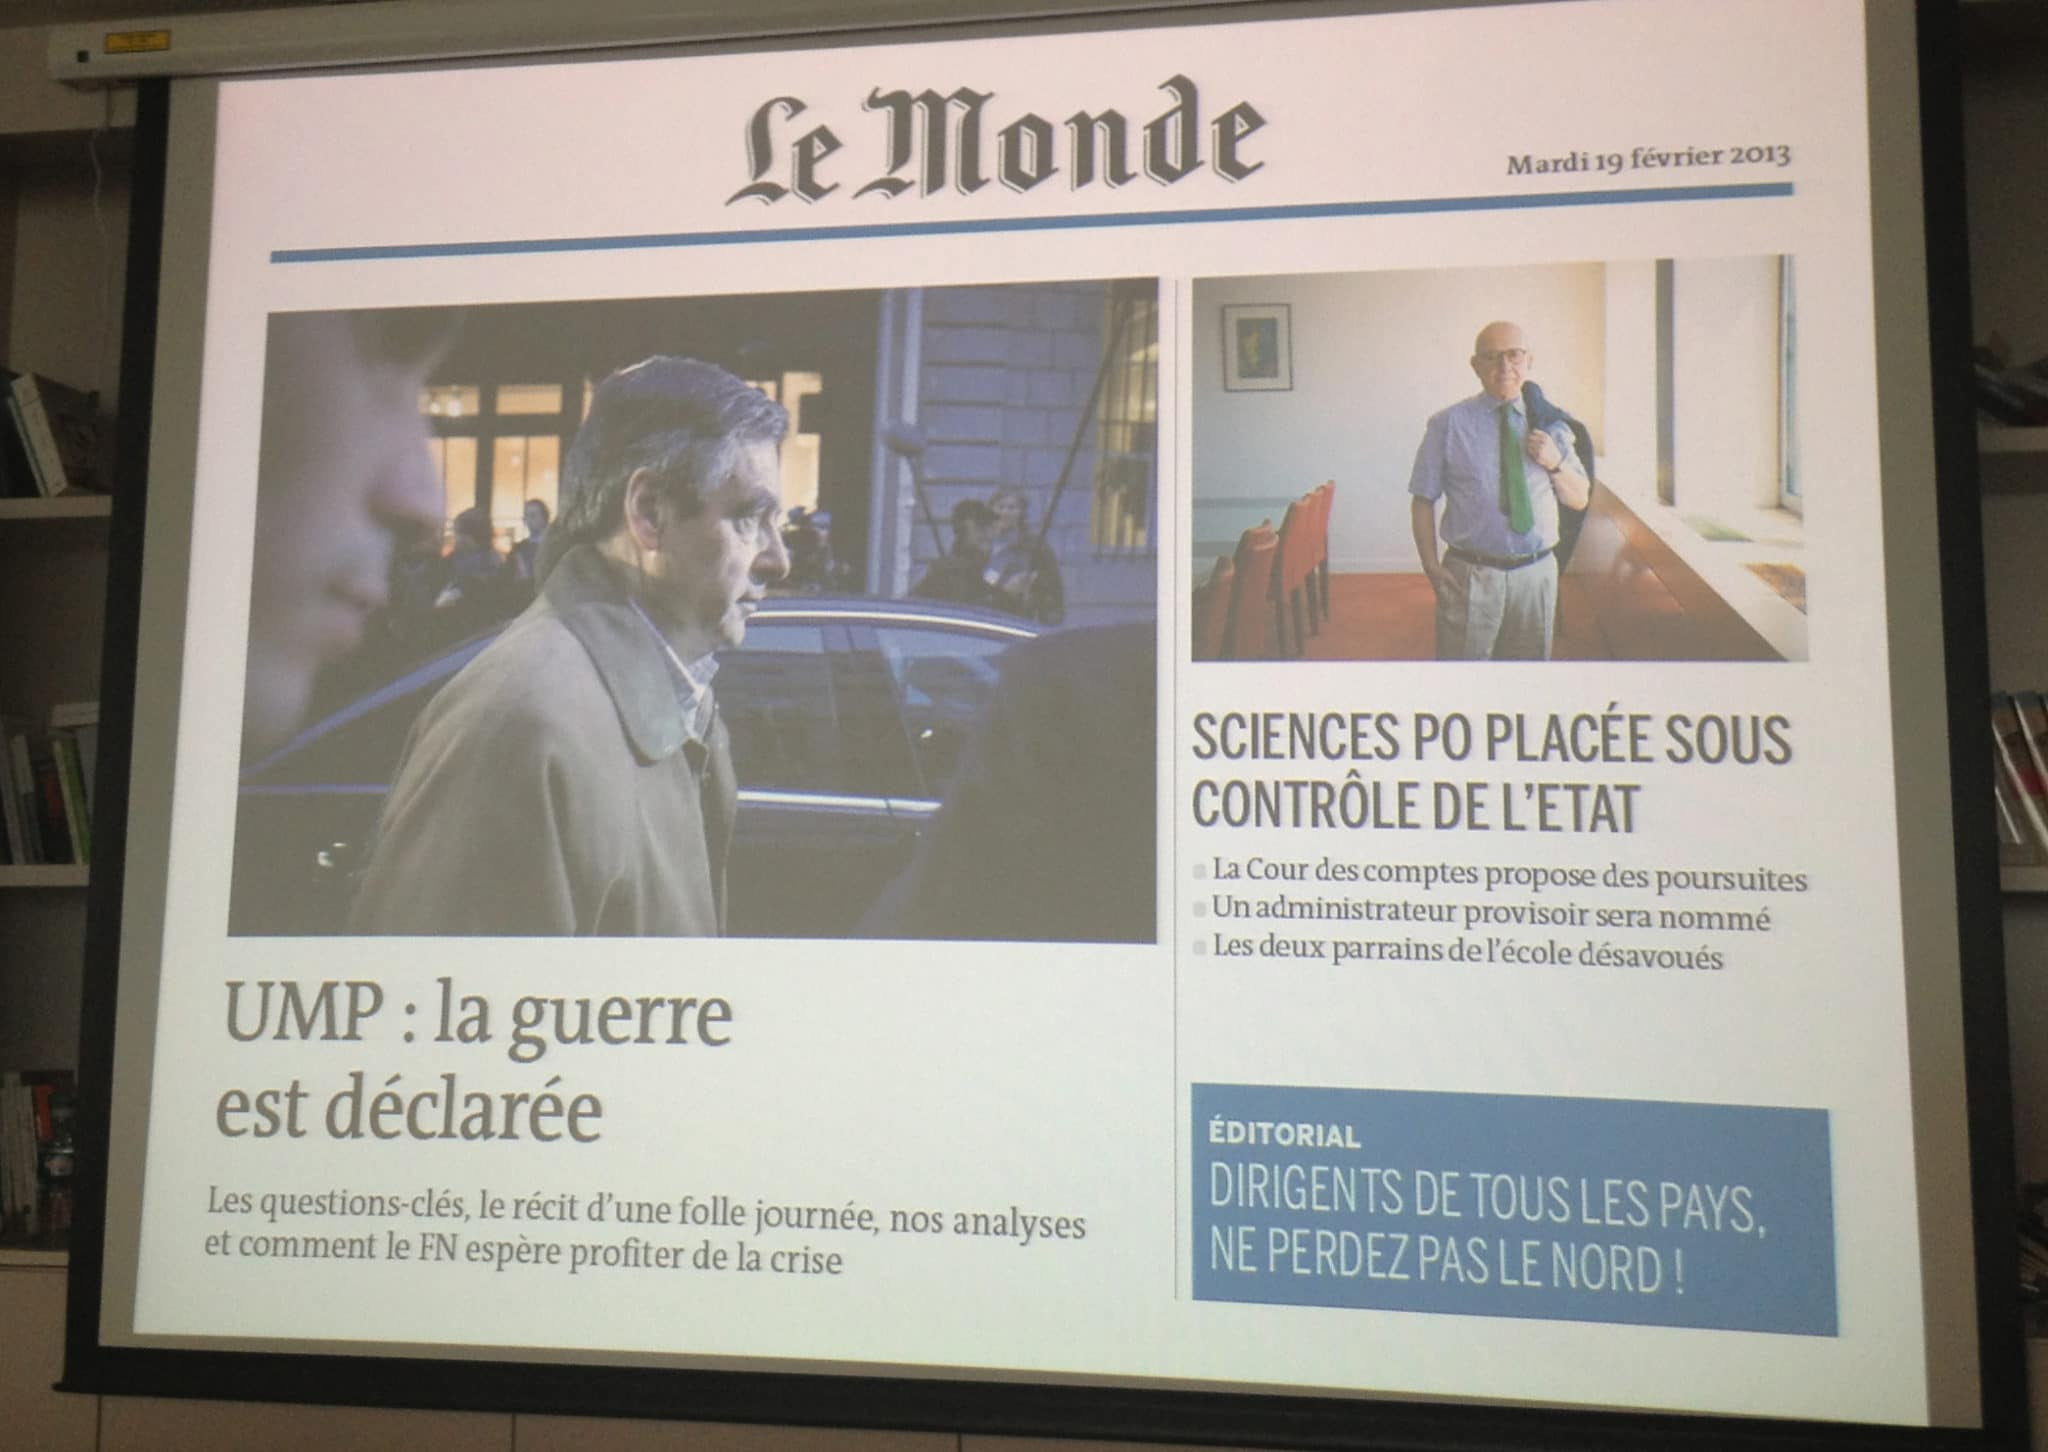 Le journal tactile enrichi @Le Monde